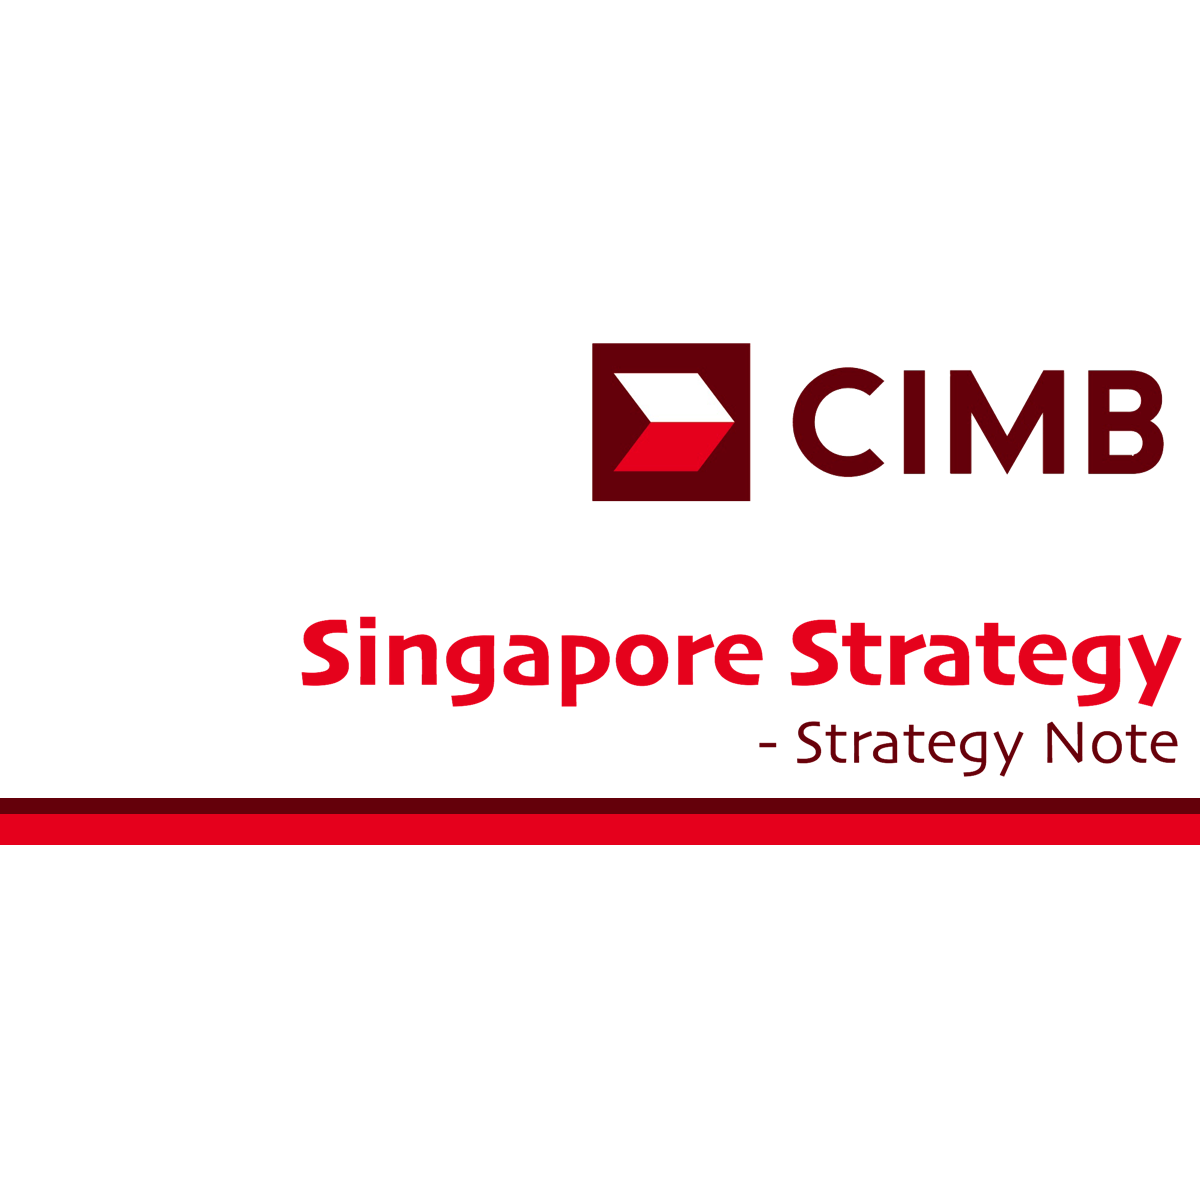 Stock Strategy Singapore - CGS-CIMB 2018-05-24: Analysts' Alpha Picks For 2H18 (large Cap)